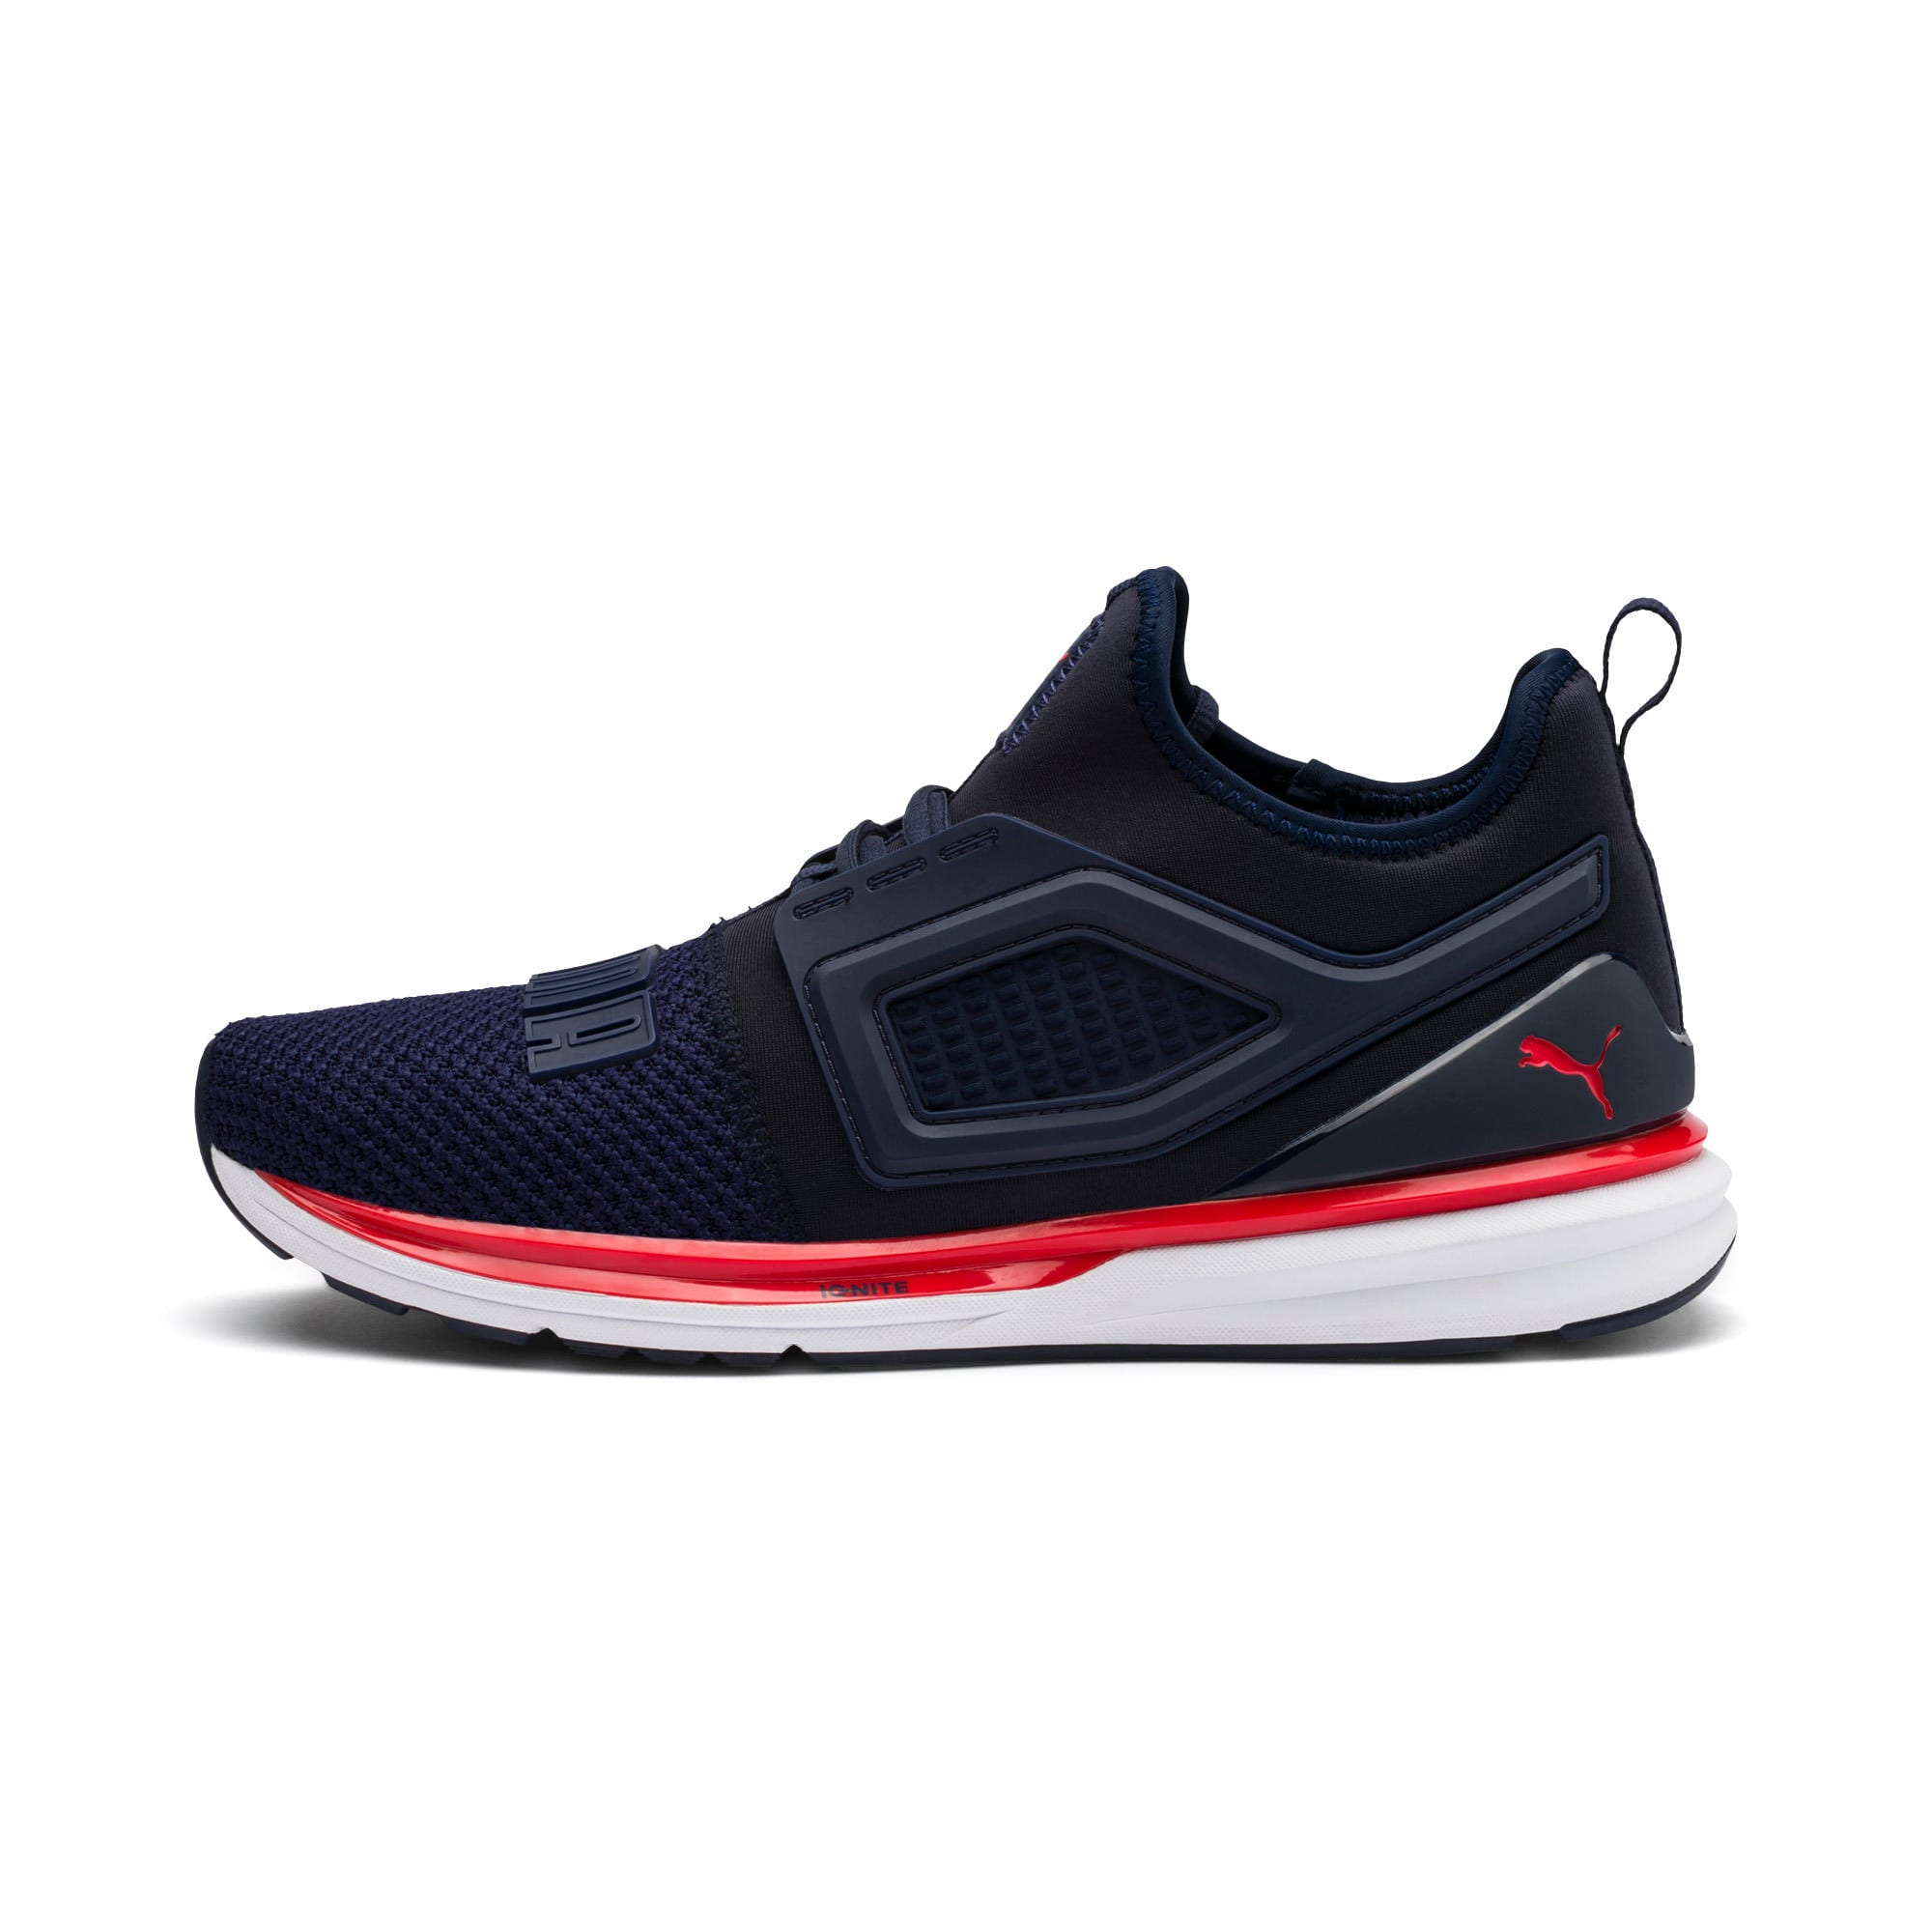 Thumbnail 1 of Chaussure de course IGNITE Limitless 2, Peacoat-High Risk Red, medium